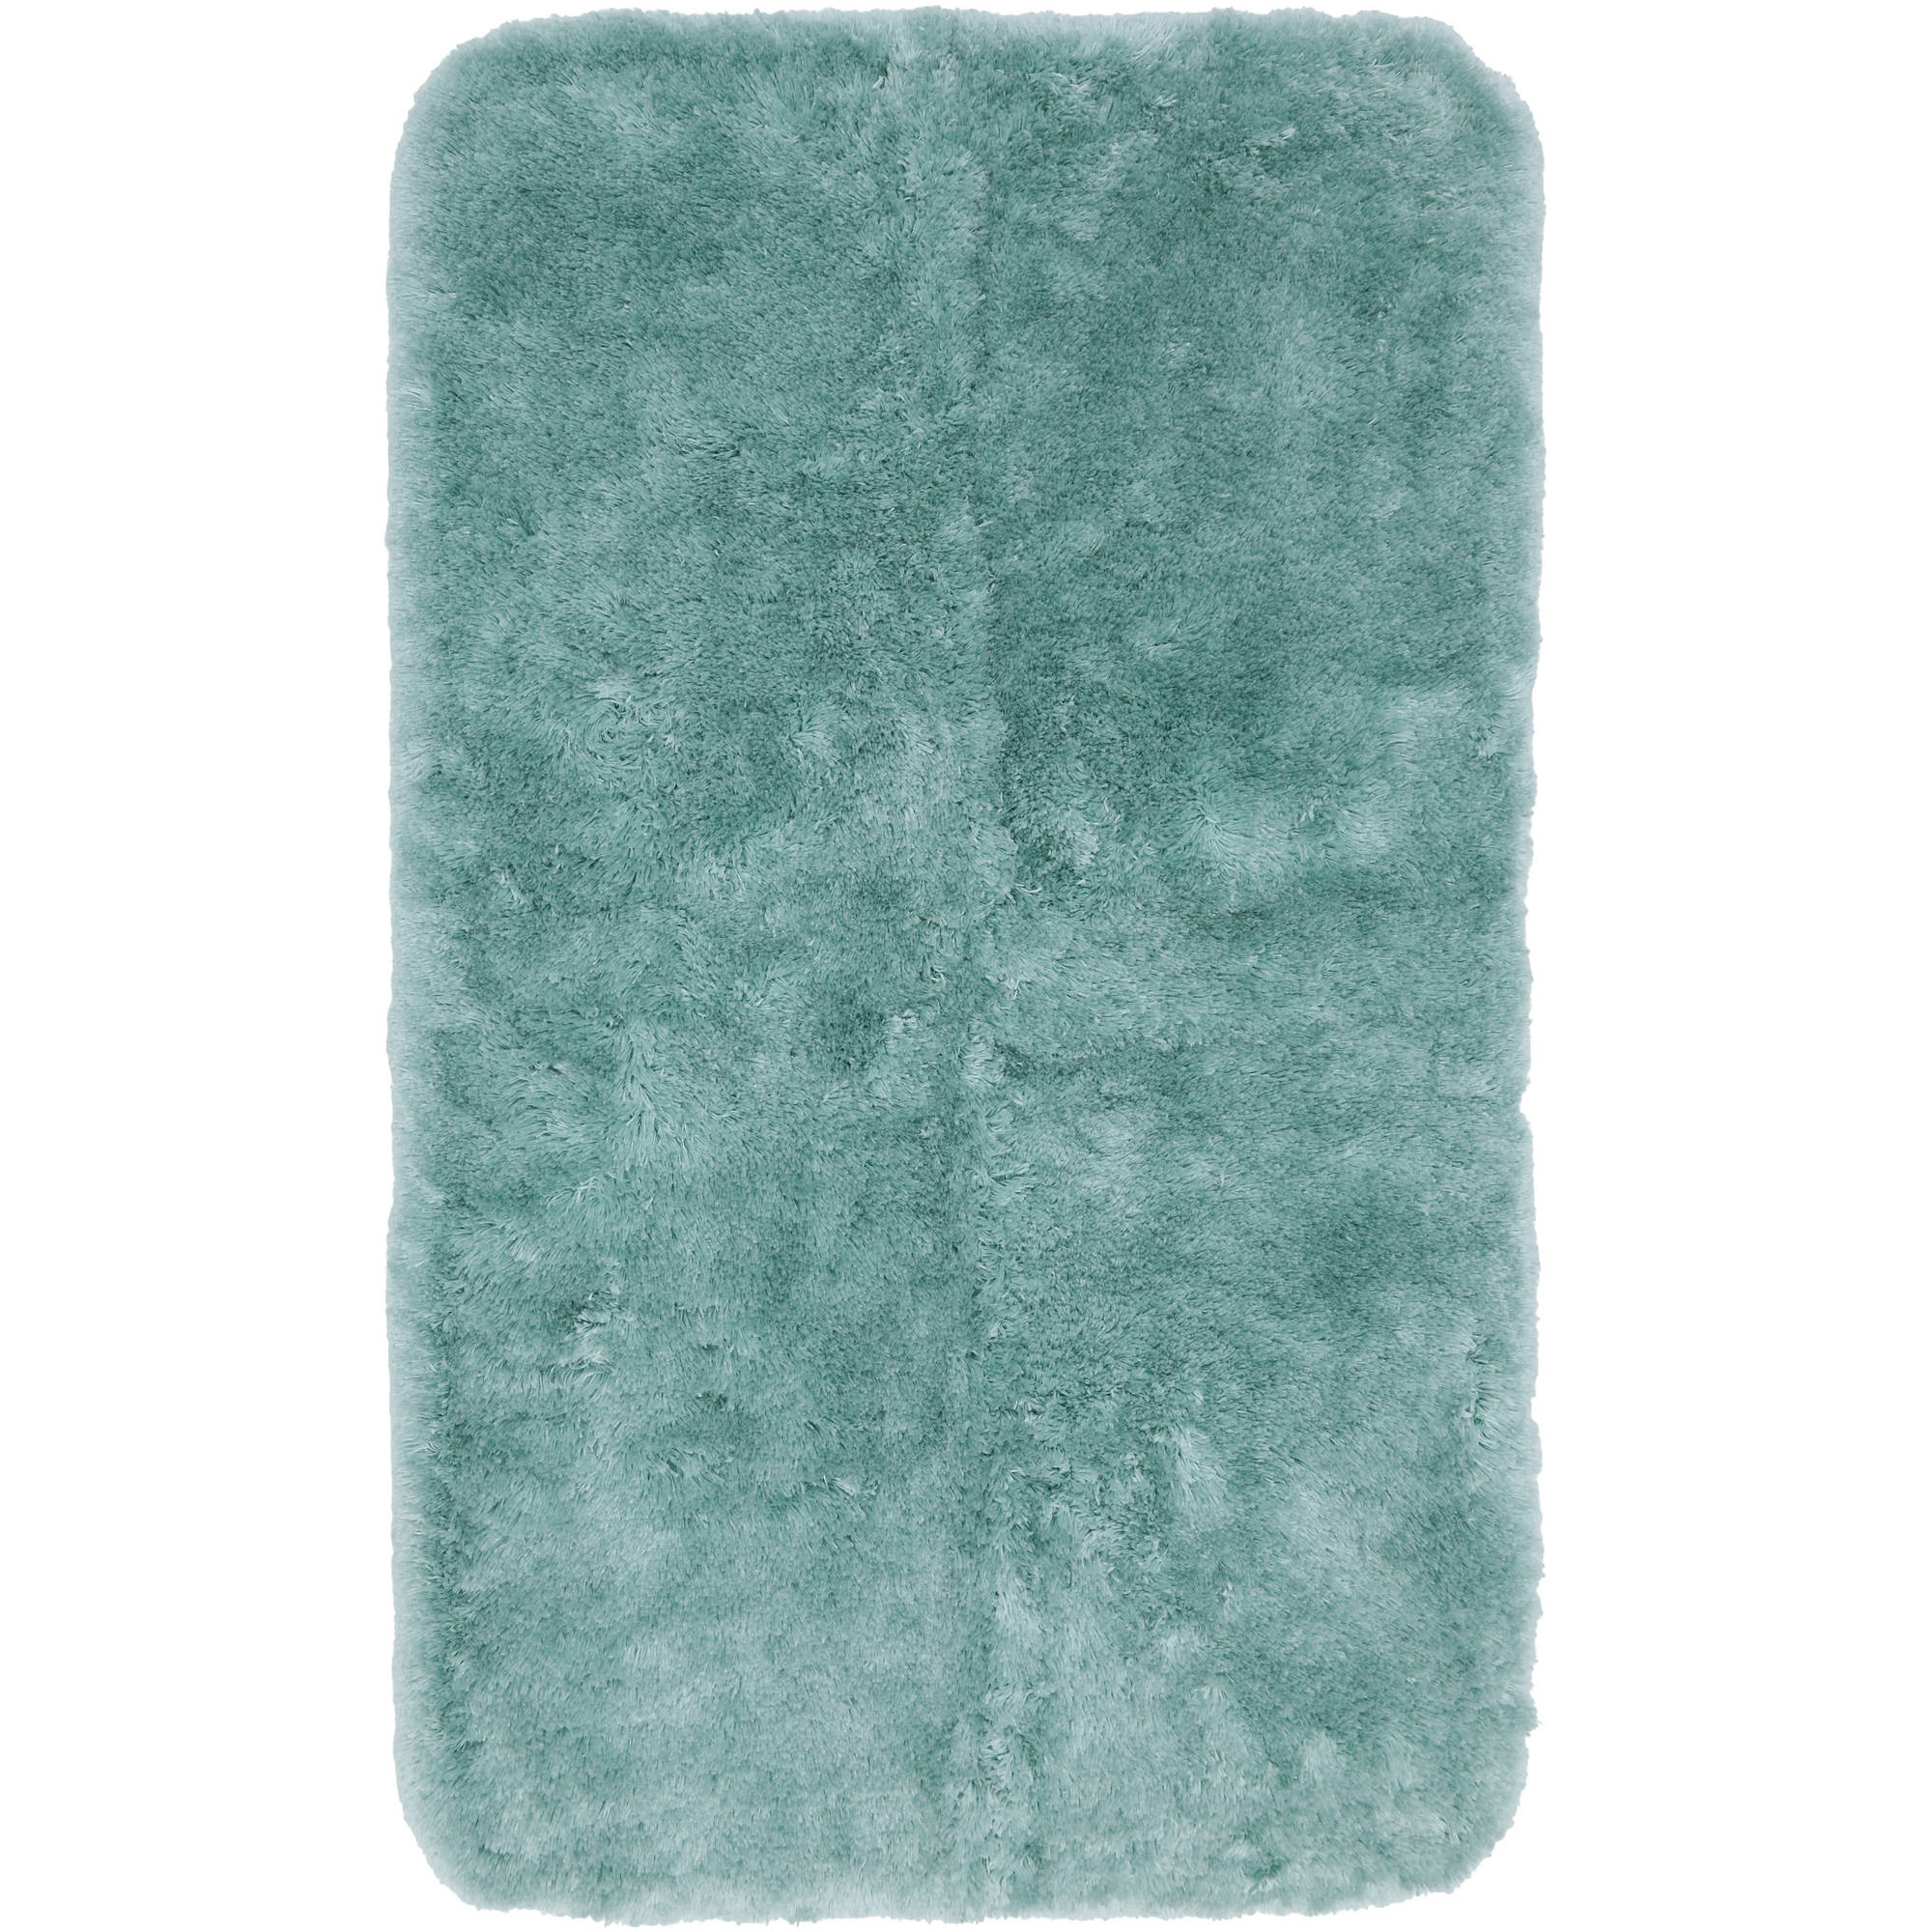 Better Homes and Gardens Thick and Plush Bath Mat